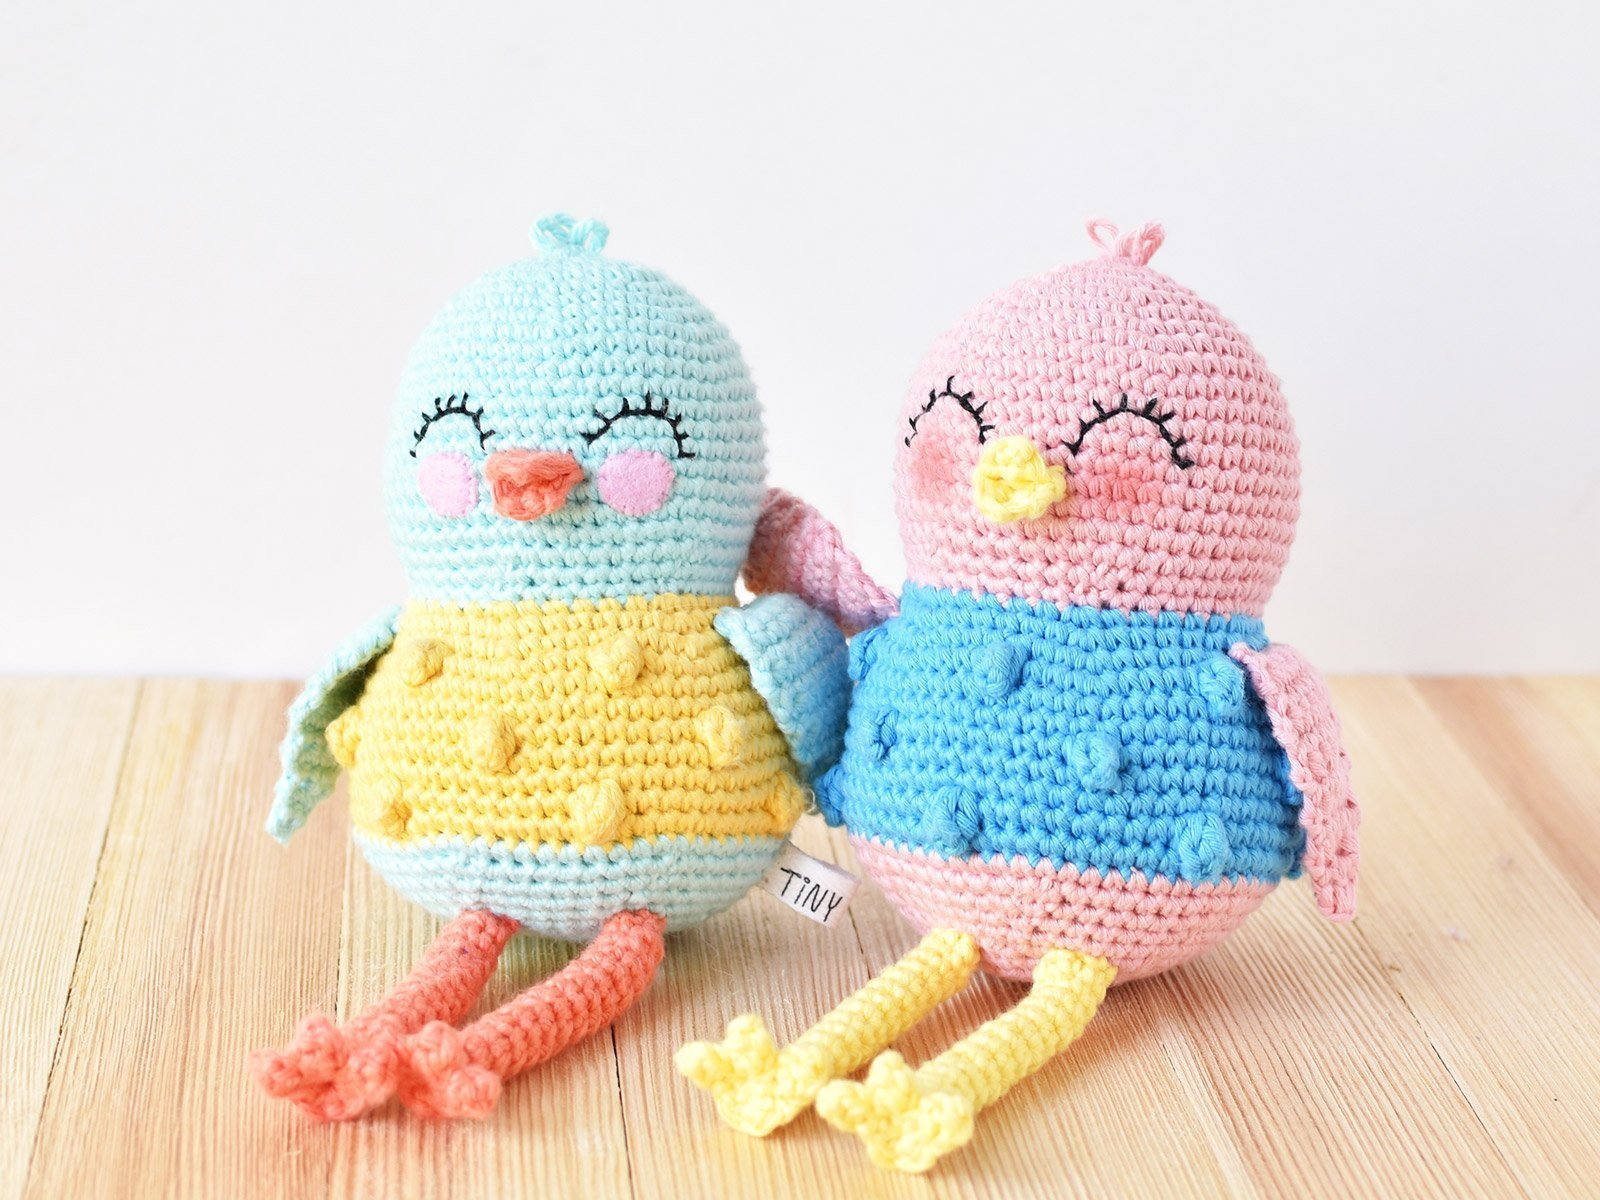 Two crocheted bird dolls sitting side by side on a wooden surface in front of a white background. The bird on the left is blue and yellow and the bird on the right is pink and blue.